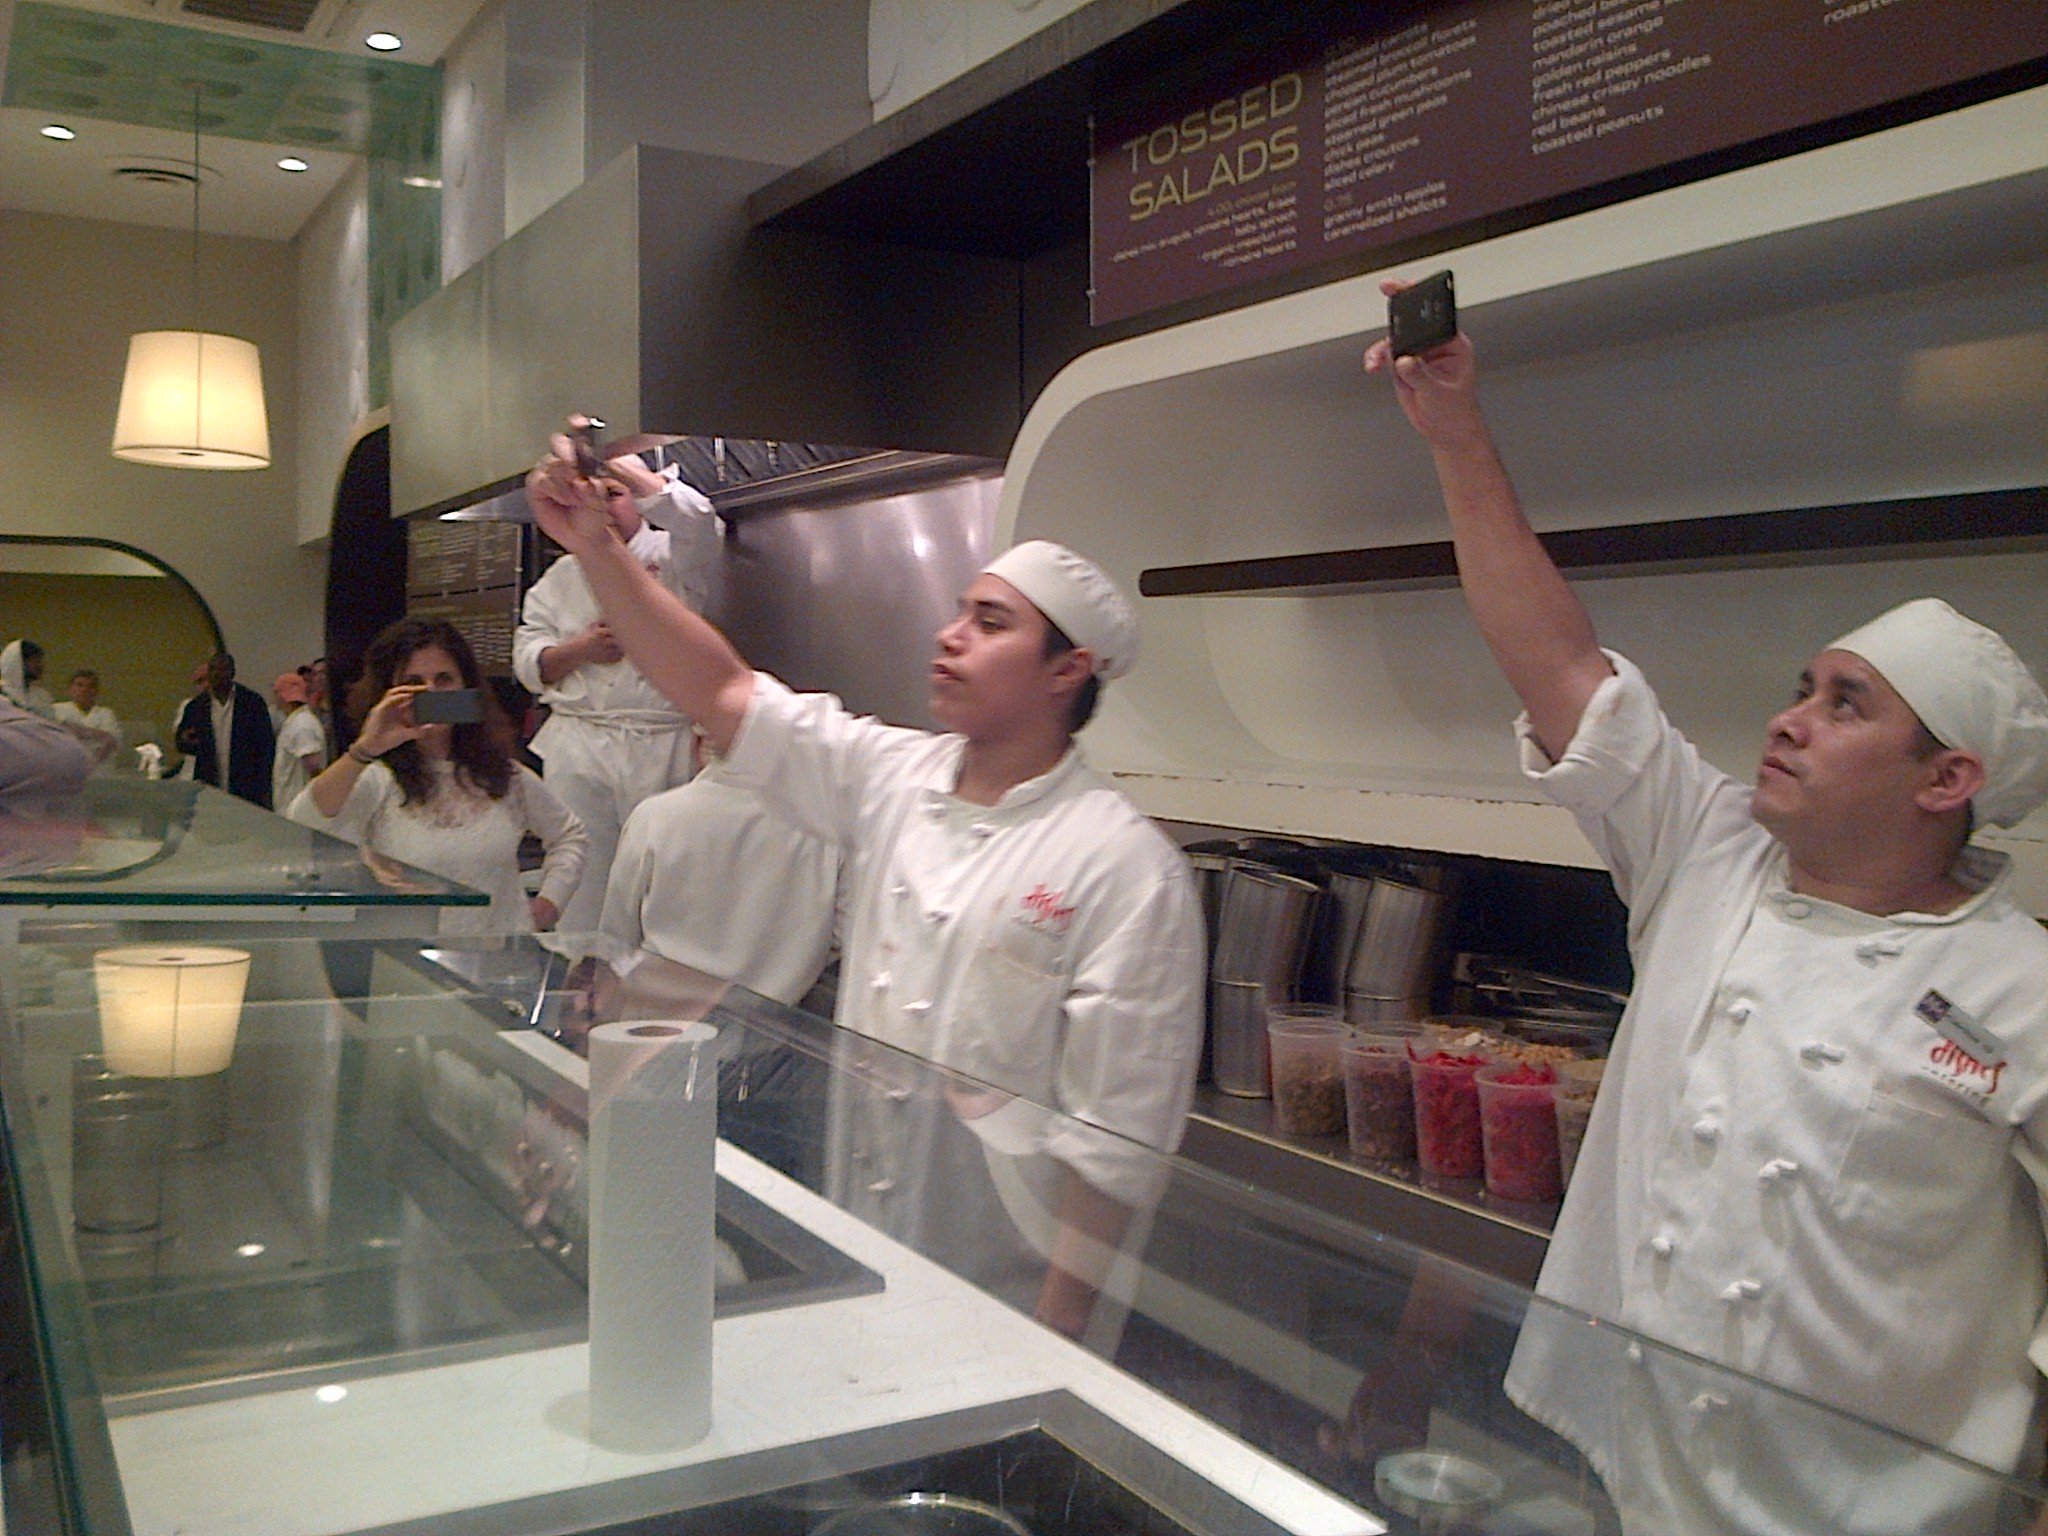 On shift workers at Dishes film the action on their camera phones. (WNV/Laura Gottesdiener)